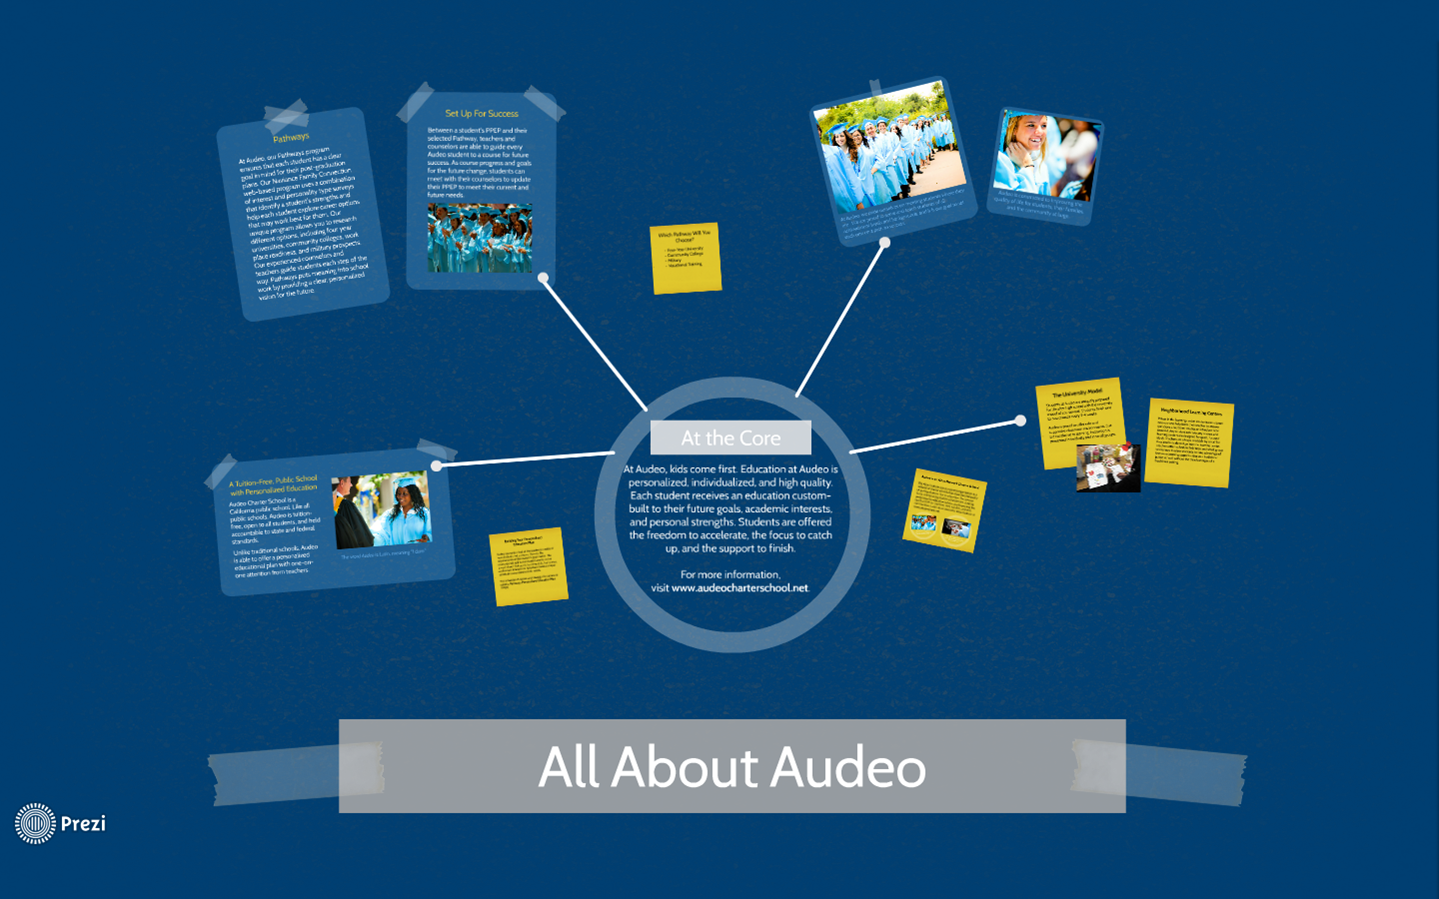 All About Audeo